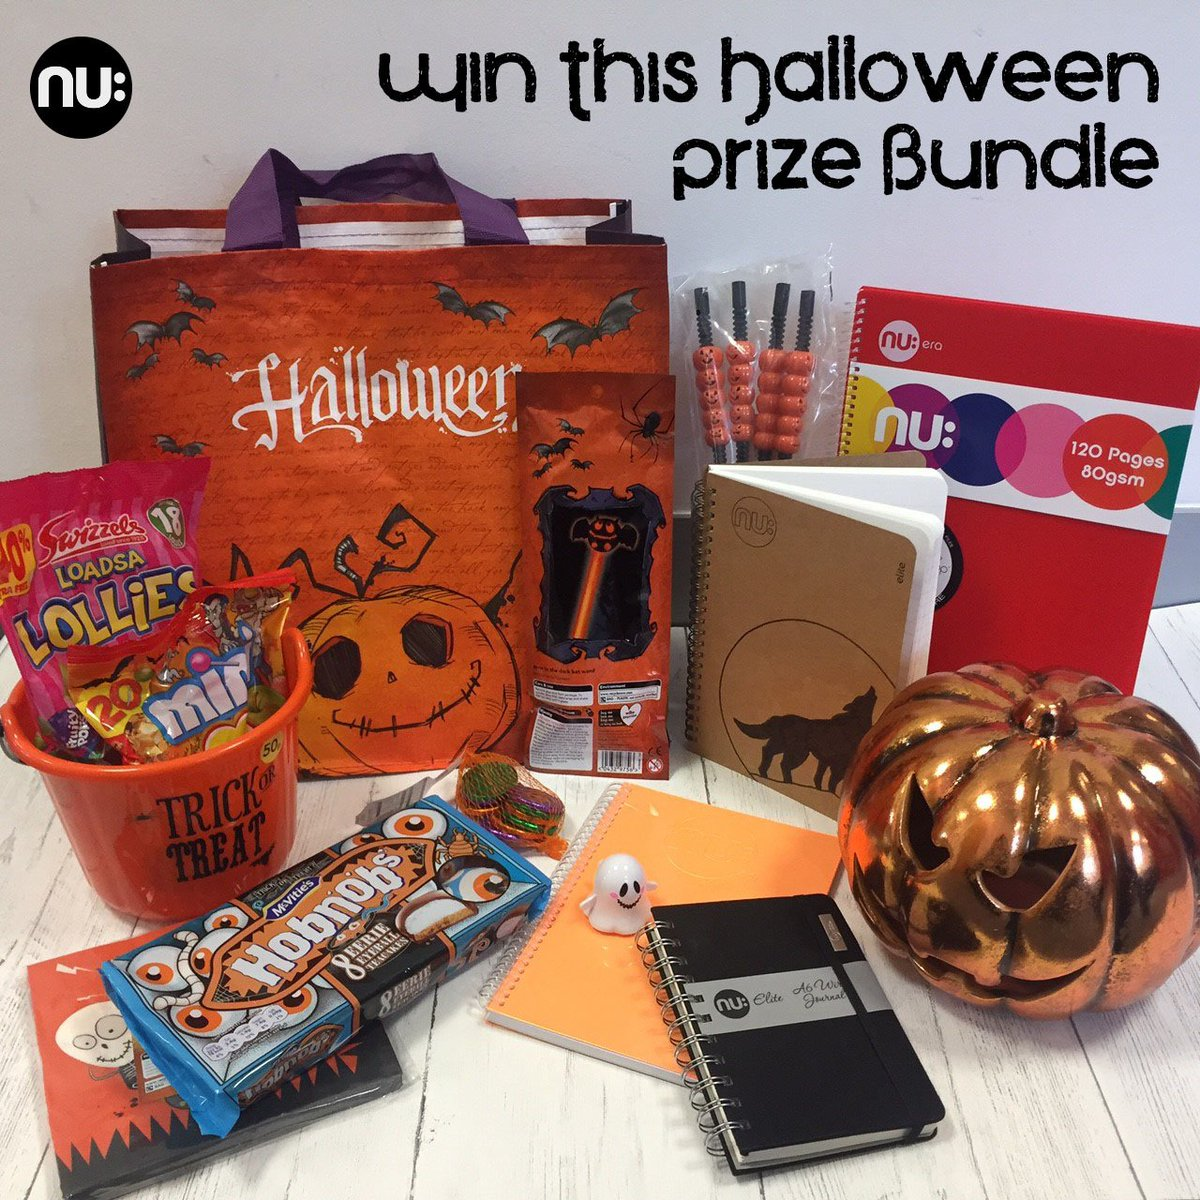 #WIN our amazing Bundle full of Nu: Notebooks &amp; spooky festive products from @LoveWilko   Simply RT &amp; FOLLOW our page! Ts&amp;Cs Apply #FriYay <br>http://pic.twitter.com/U0358n45WH